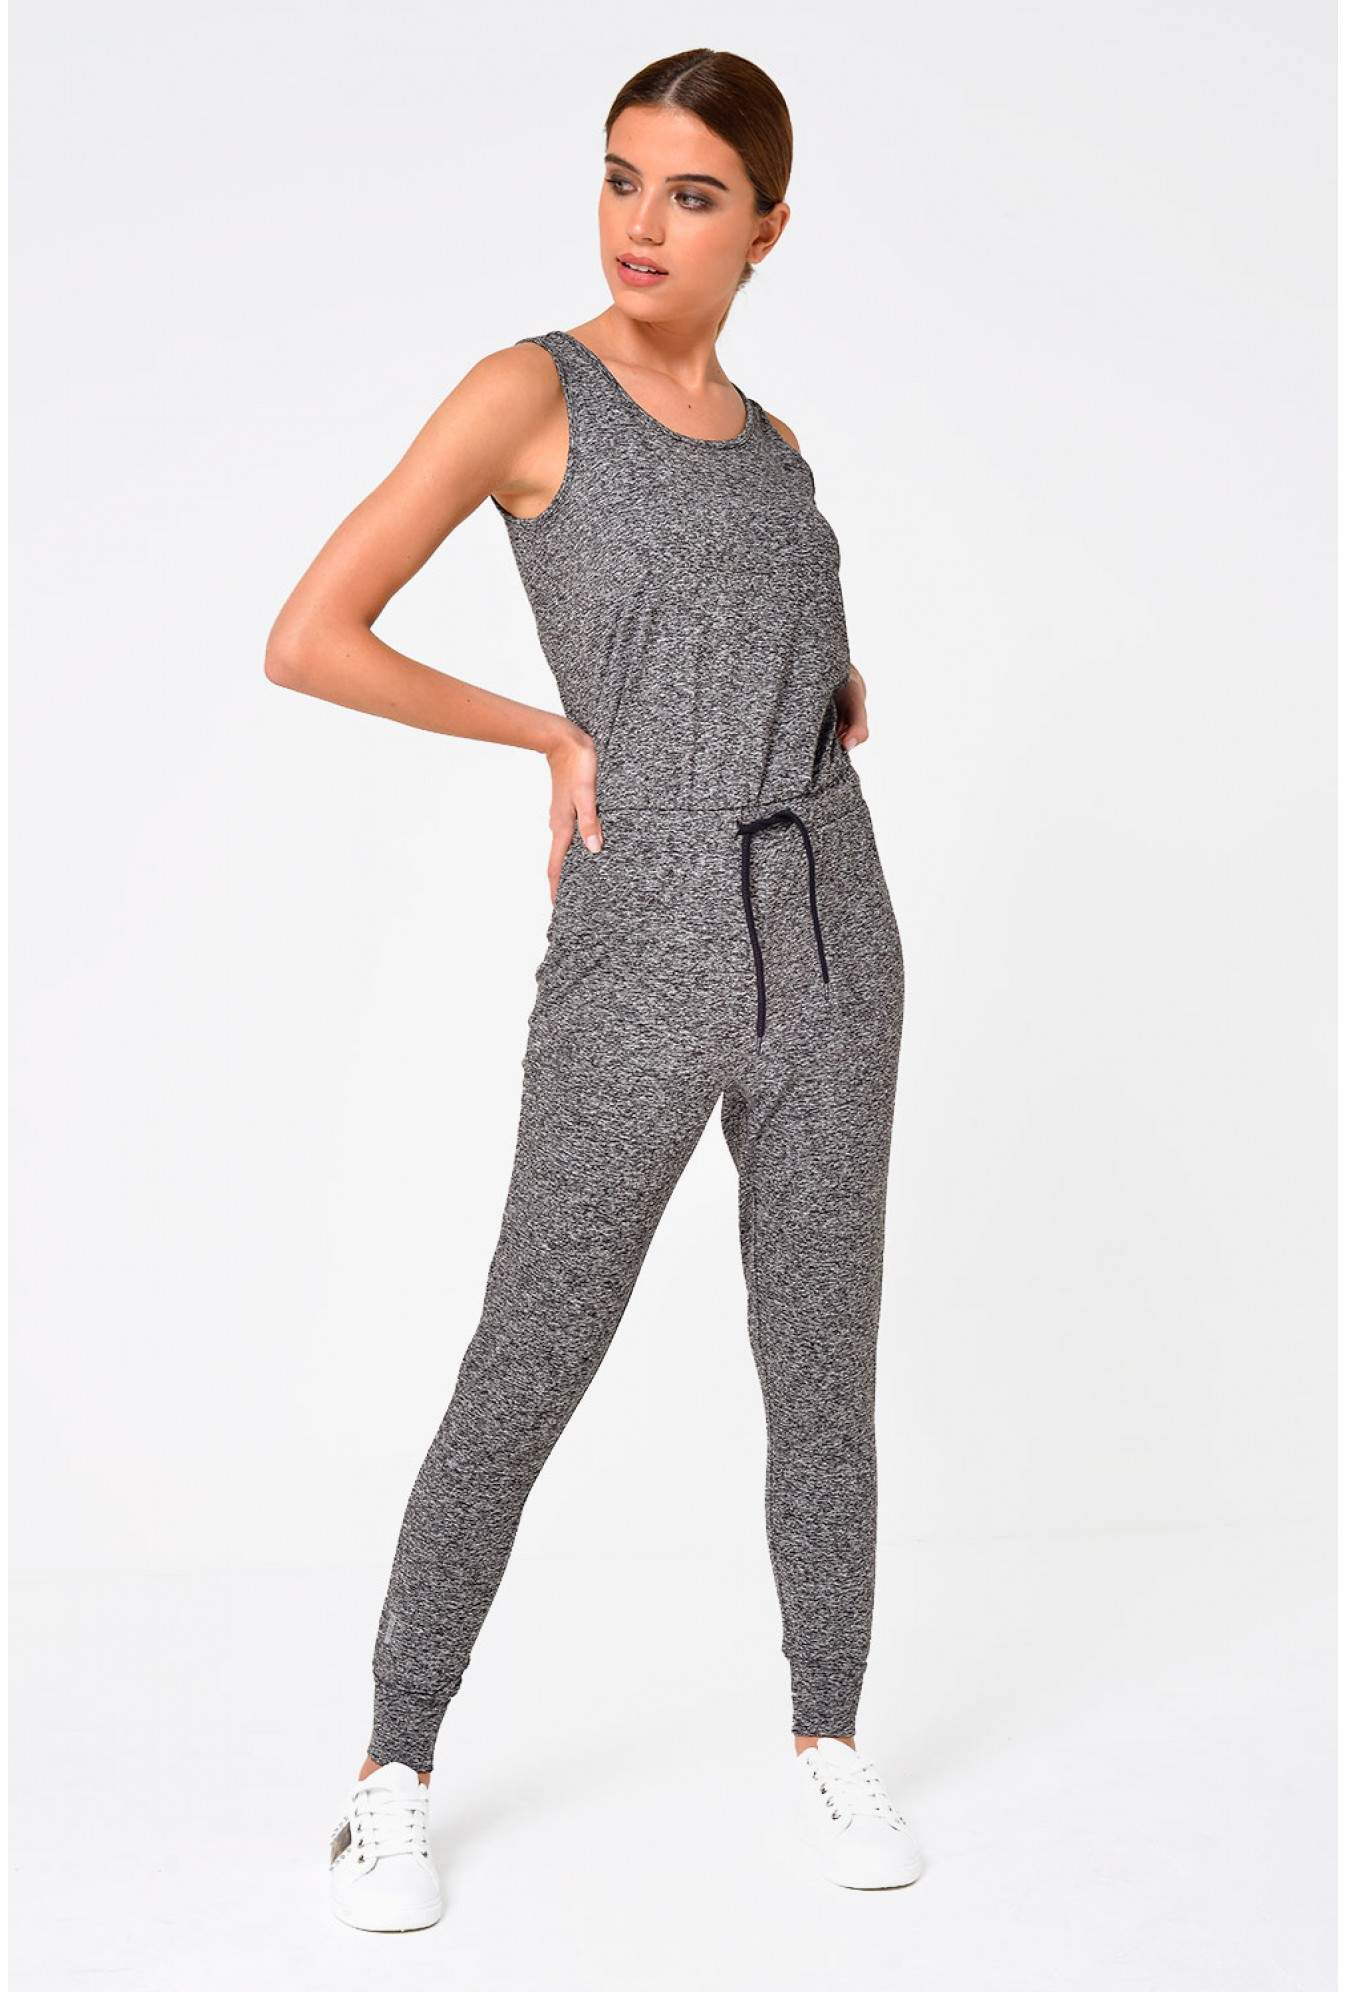 01359d25f52 More Views. Chill Yoga Jumpsuit. Video Gallery. Only